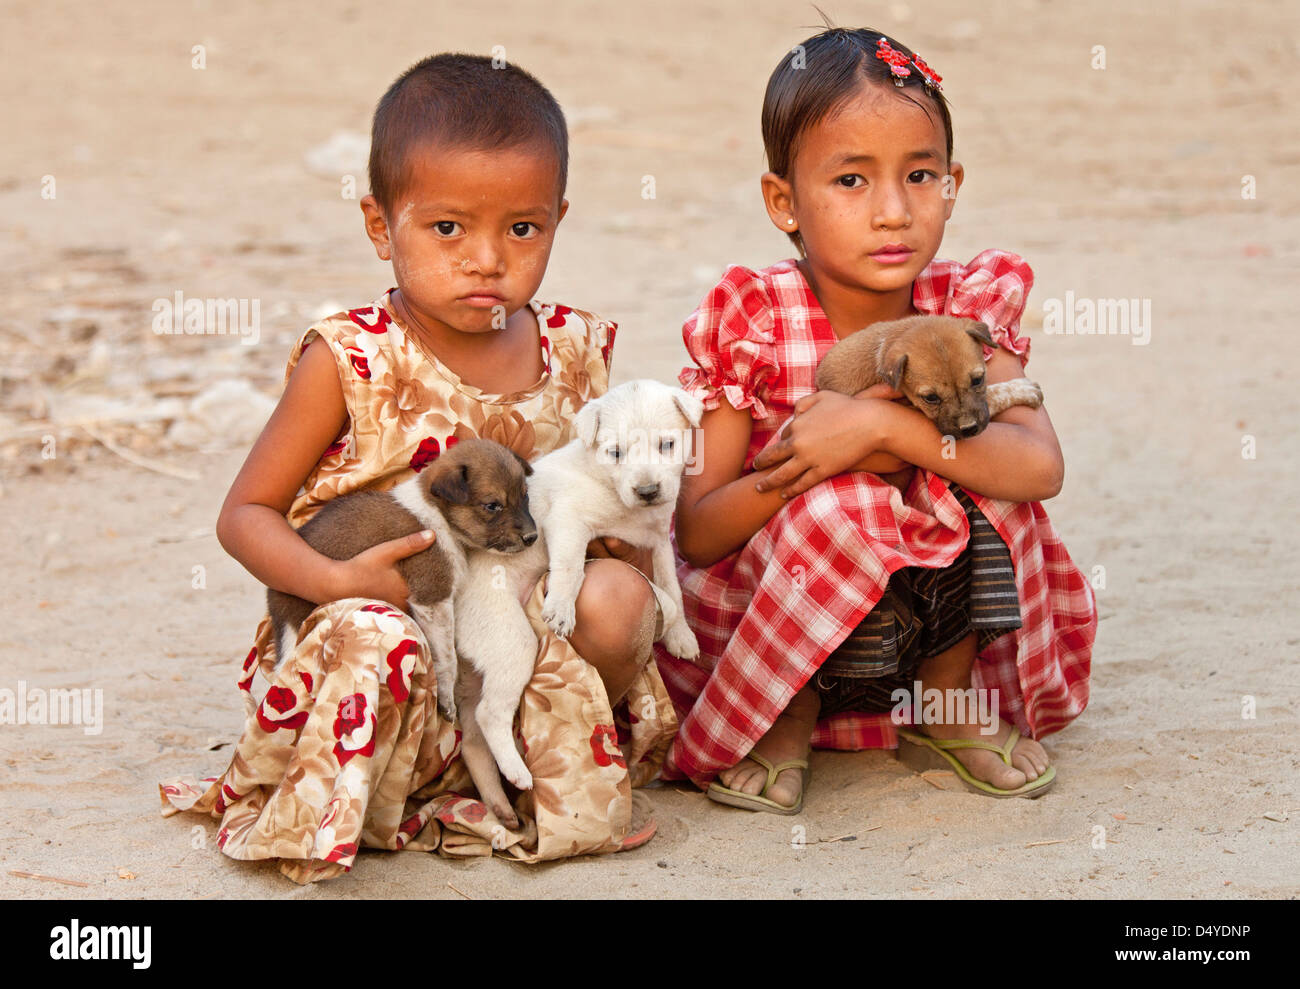 Two girls tenderly cradle a litter of puppies, Mandalay, Myanmar. Stock Photo